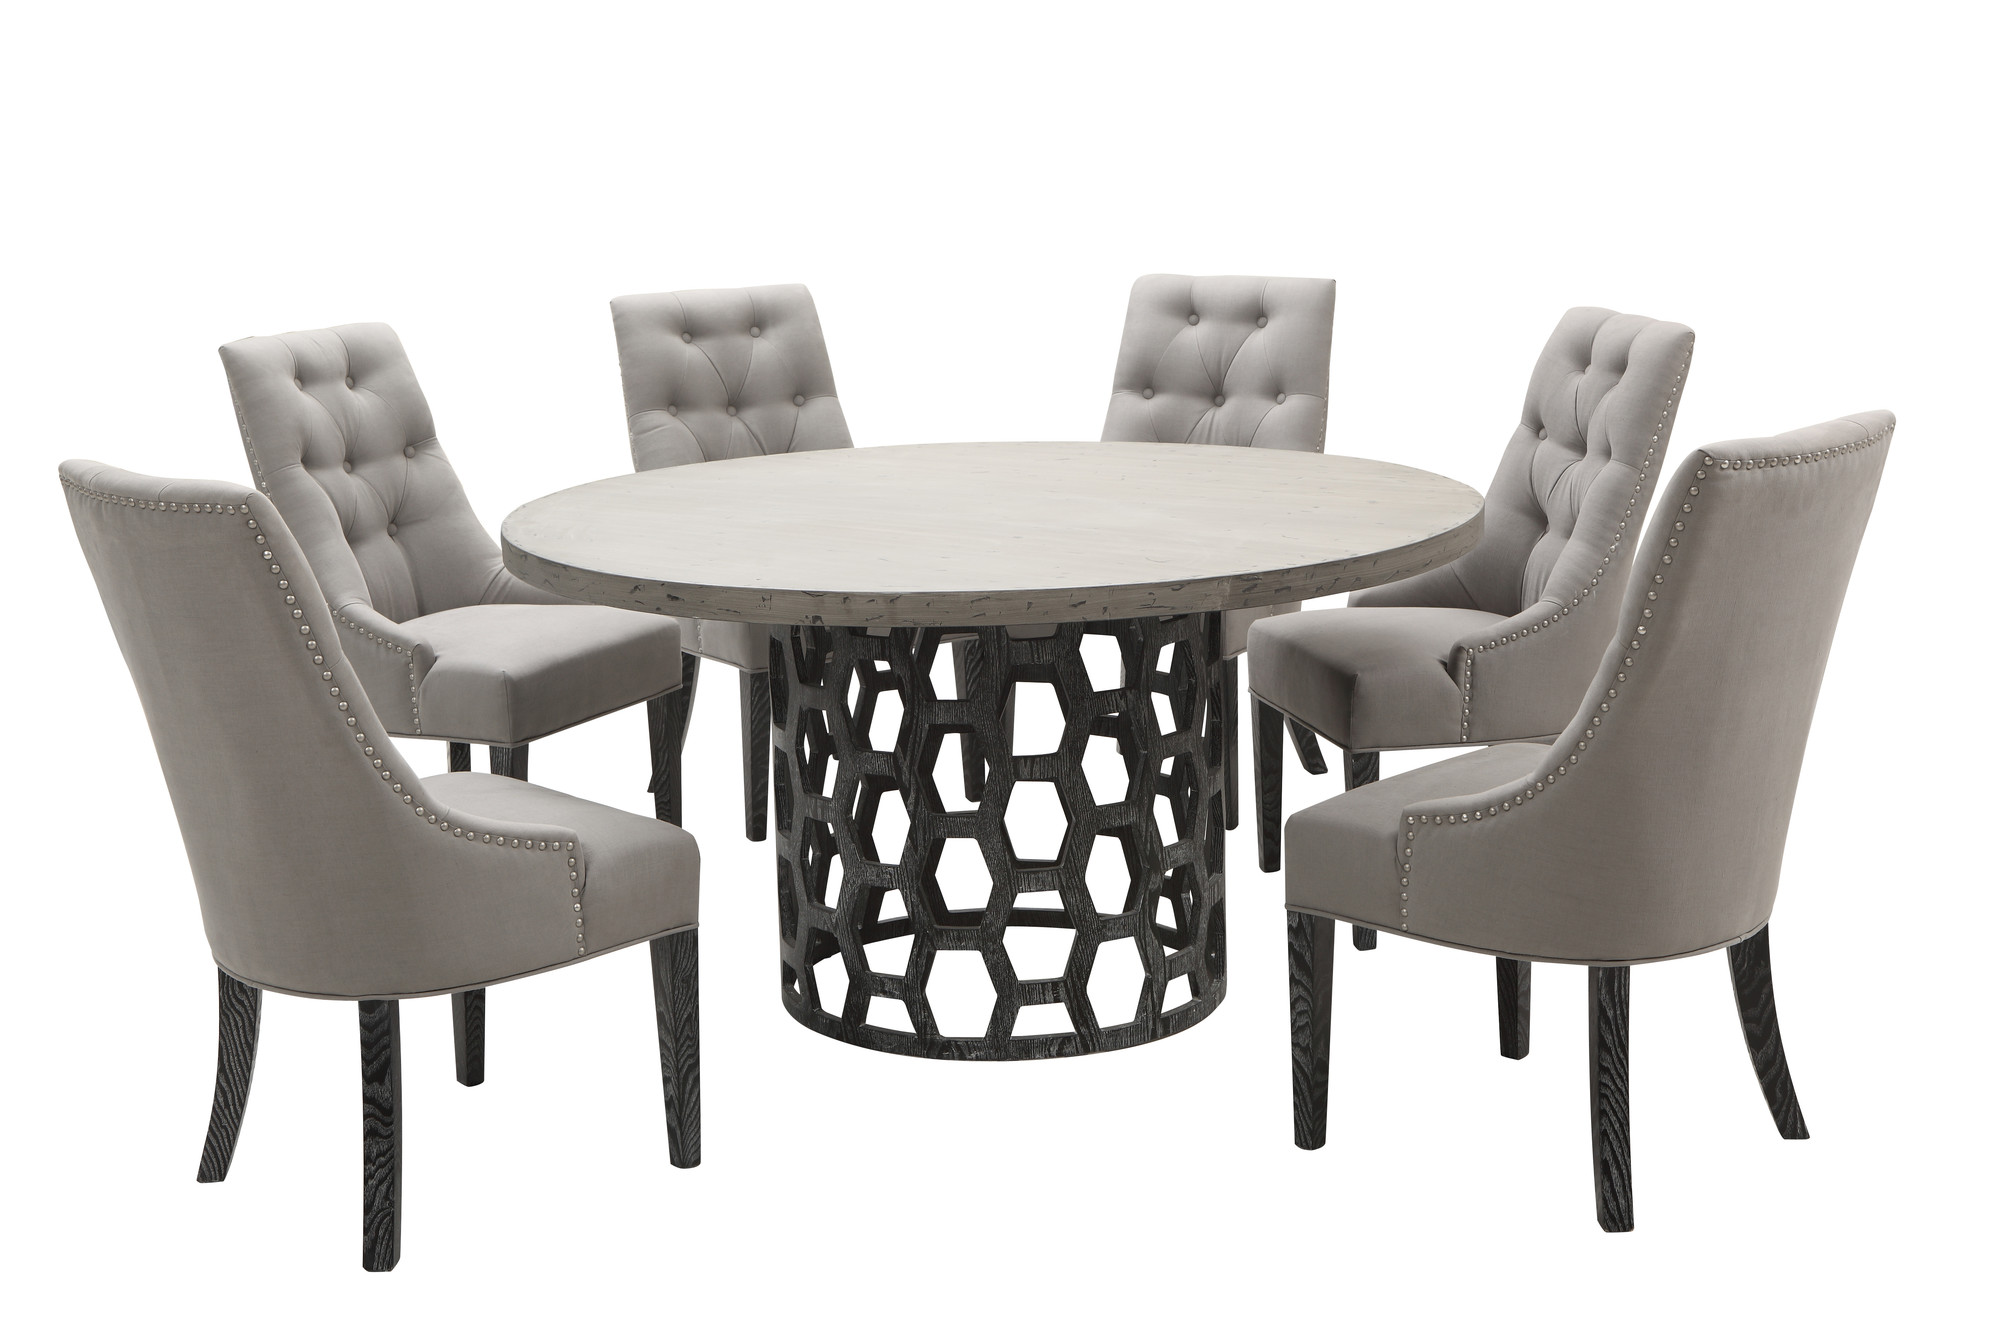 Centennial Round 5pc Dining Table Set Las Vegas Furniture Store Modern Ho